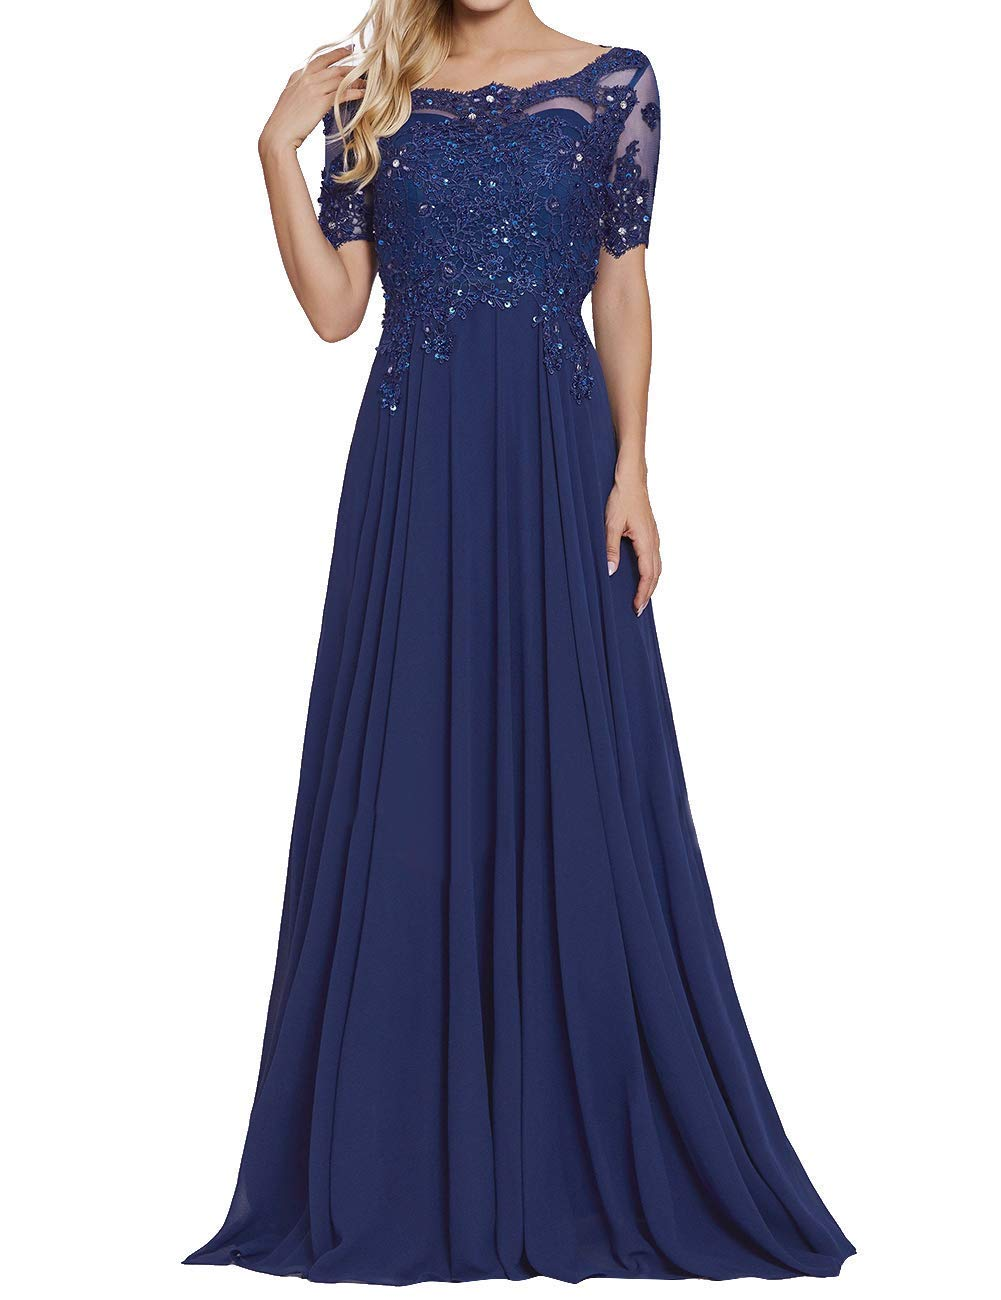 cbe0b8fbb3 tutu.vivi Appliques Beaded Chiffon Mother of The Bride Dress Short Sleeves  Lace Long Formal Evening Gowns Navy Blue Size14